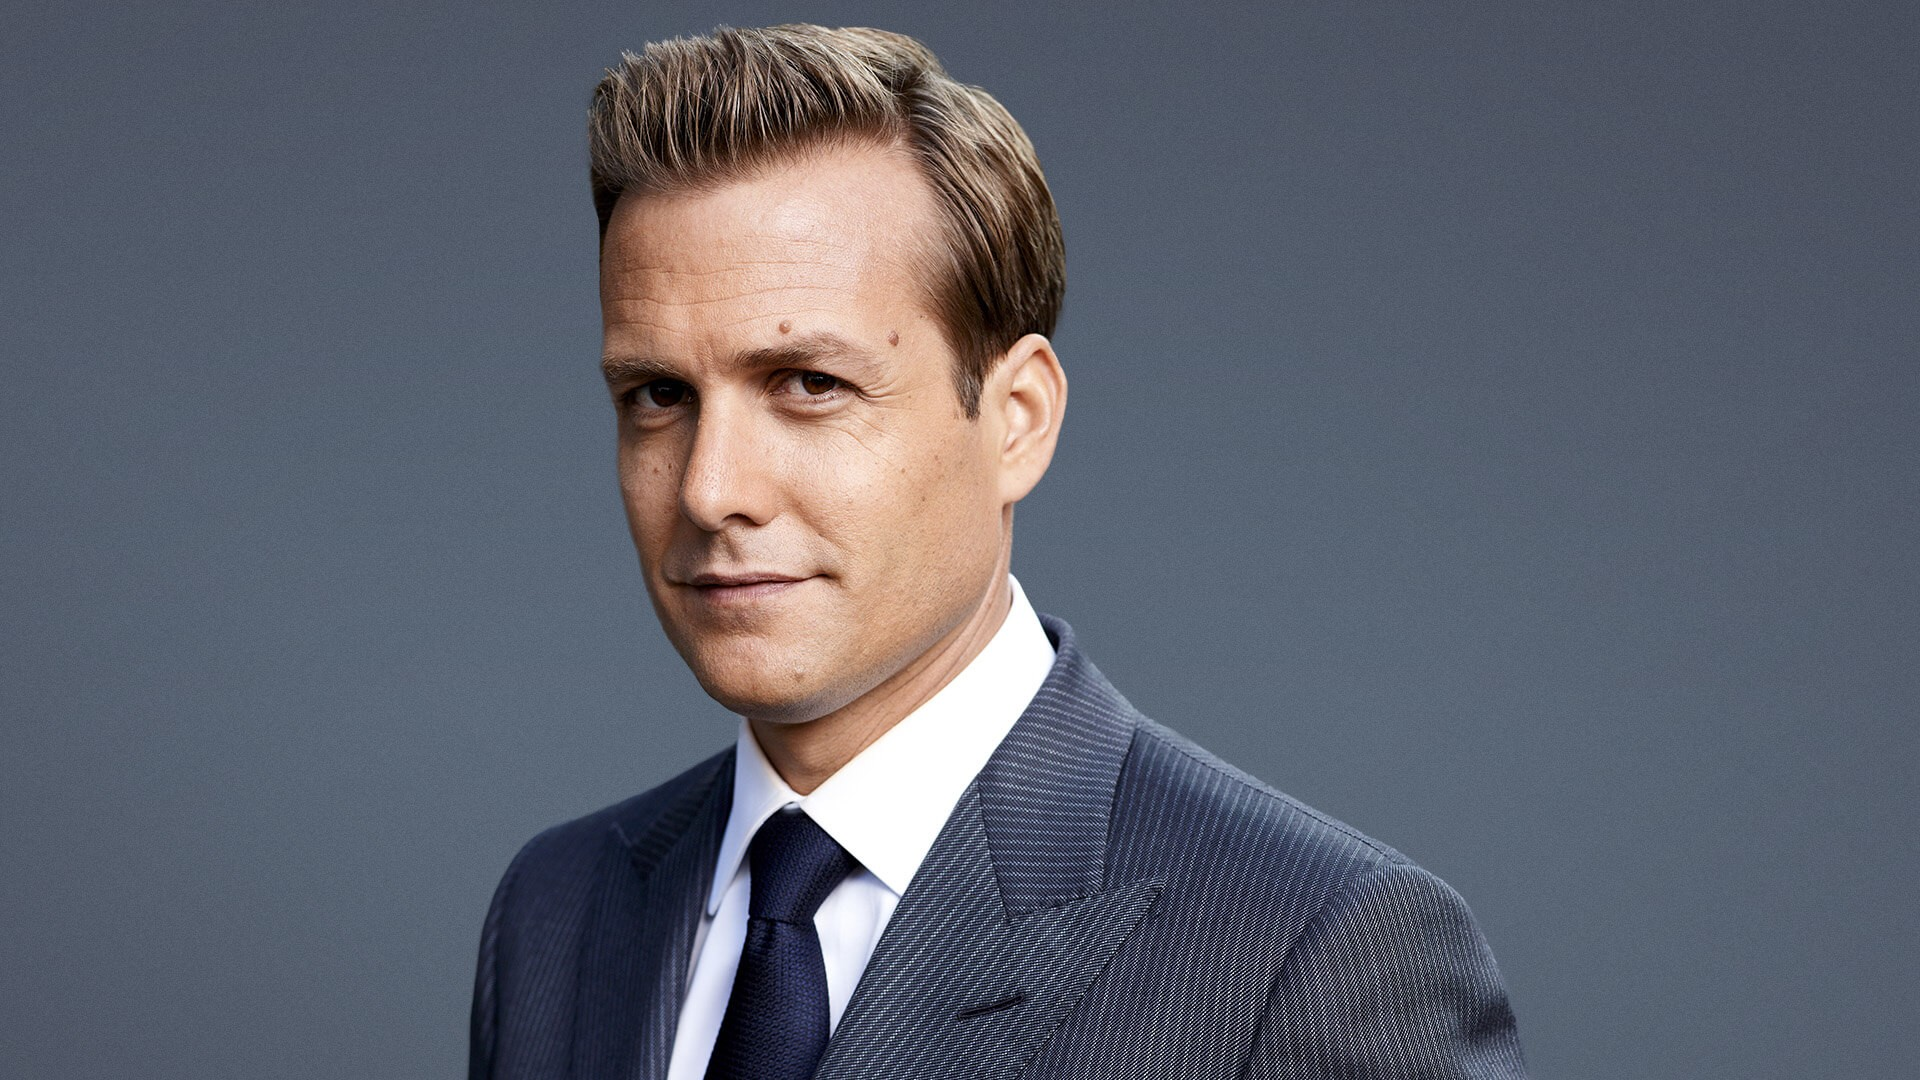 Life advice from Harvey Specter | Square Mile